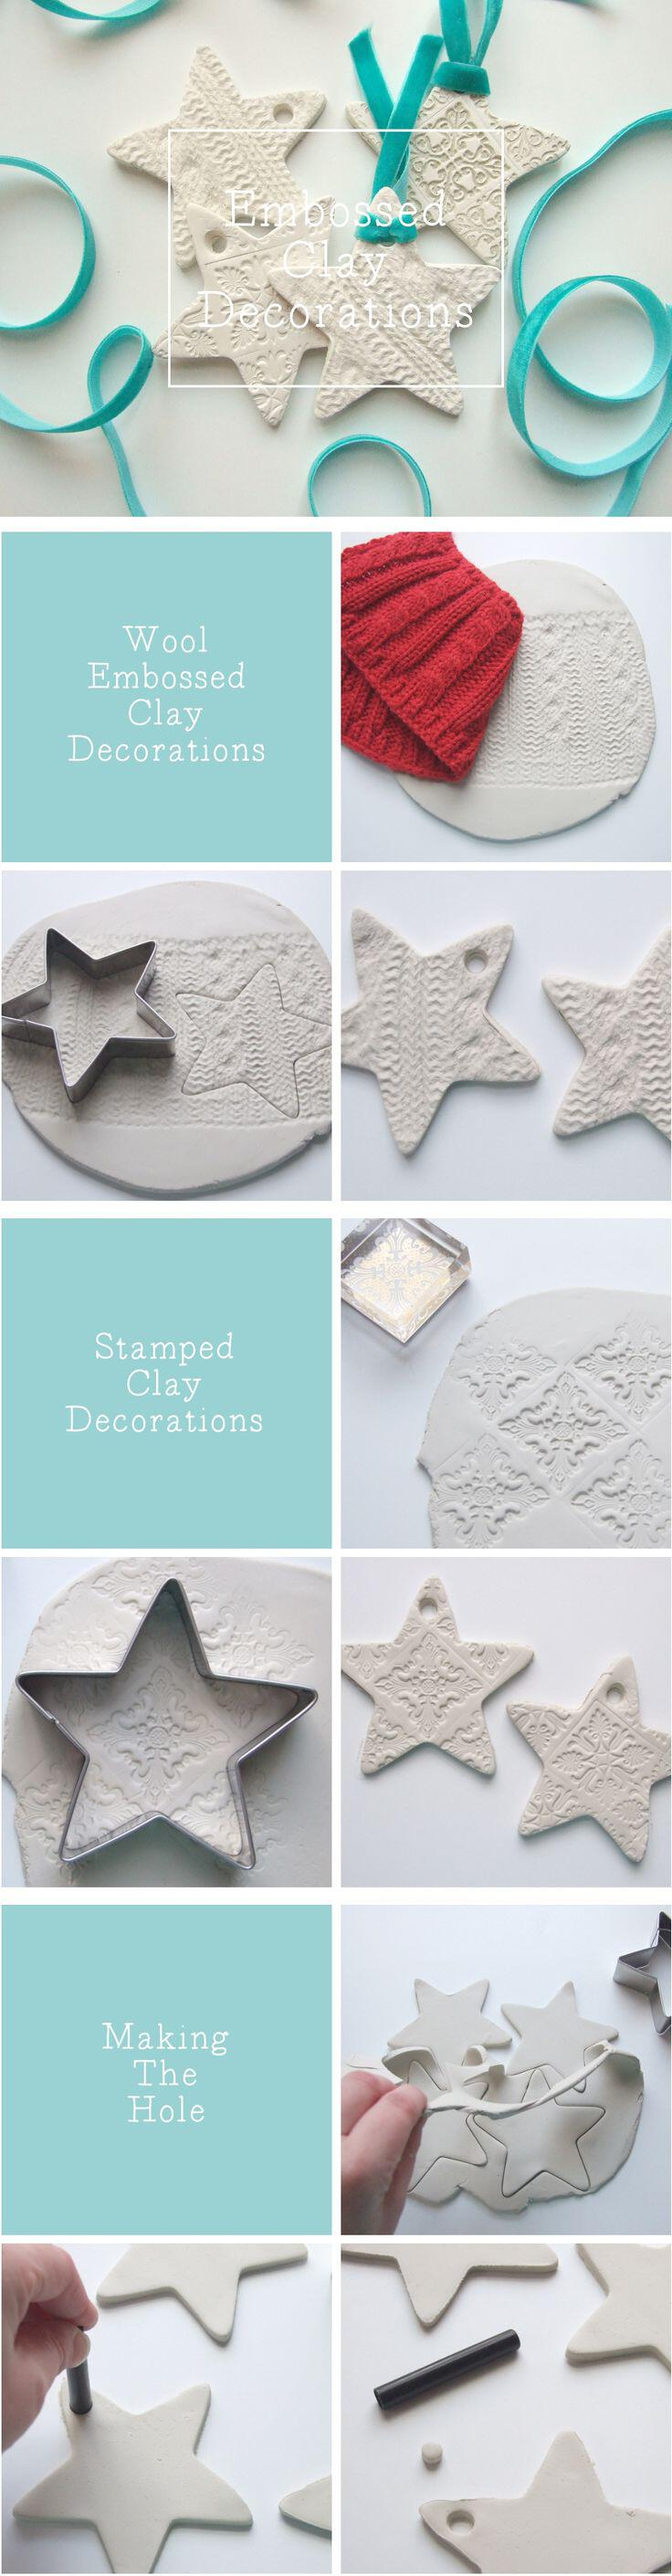 5 step step projects create christmas decoration3 - 5 step by step projects to create your own Christmas decoration